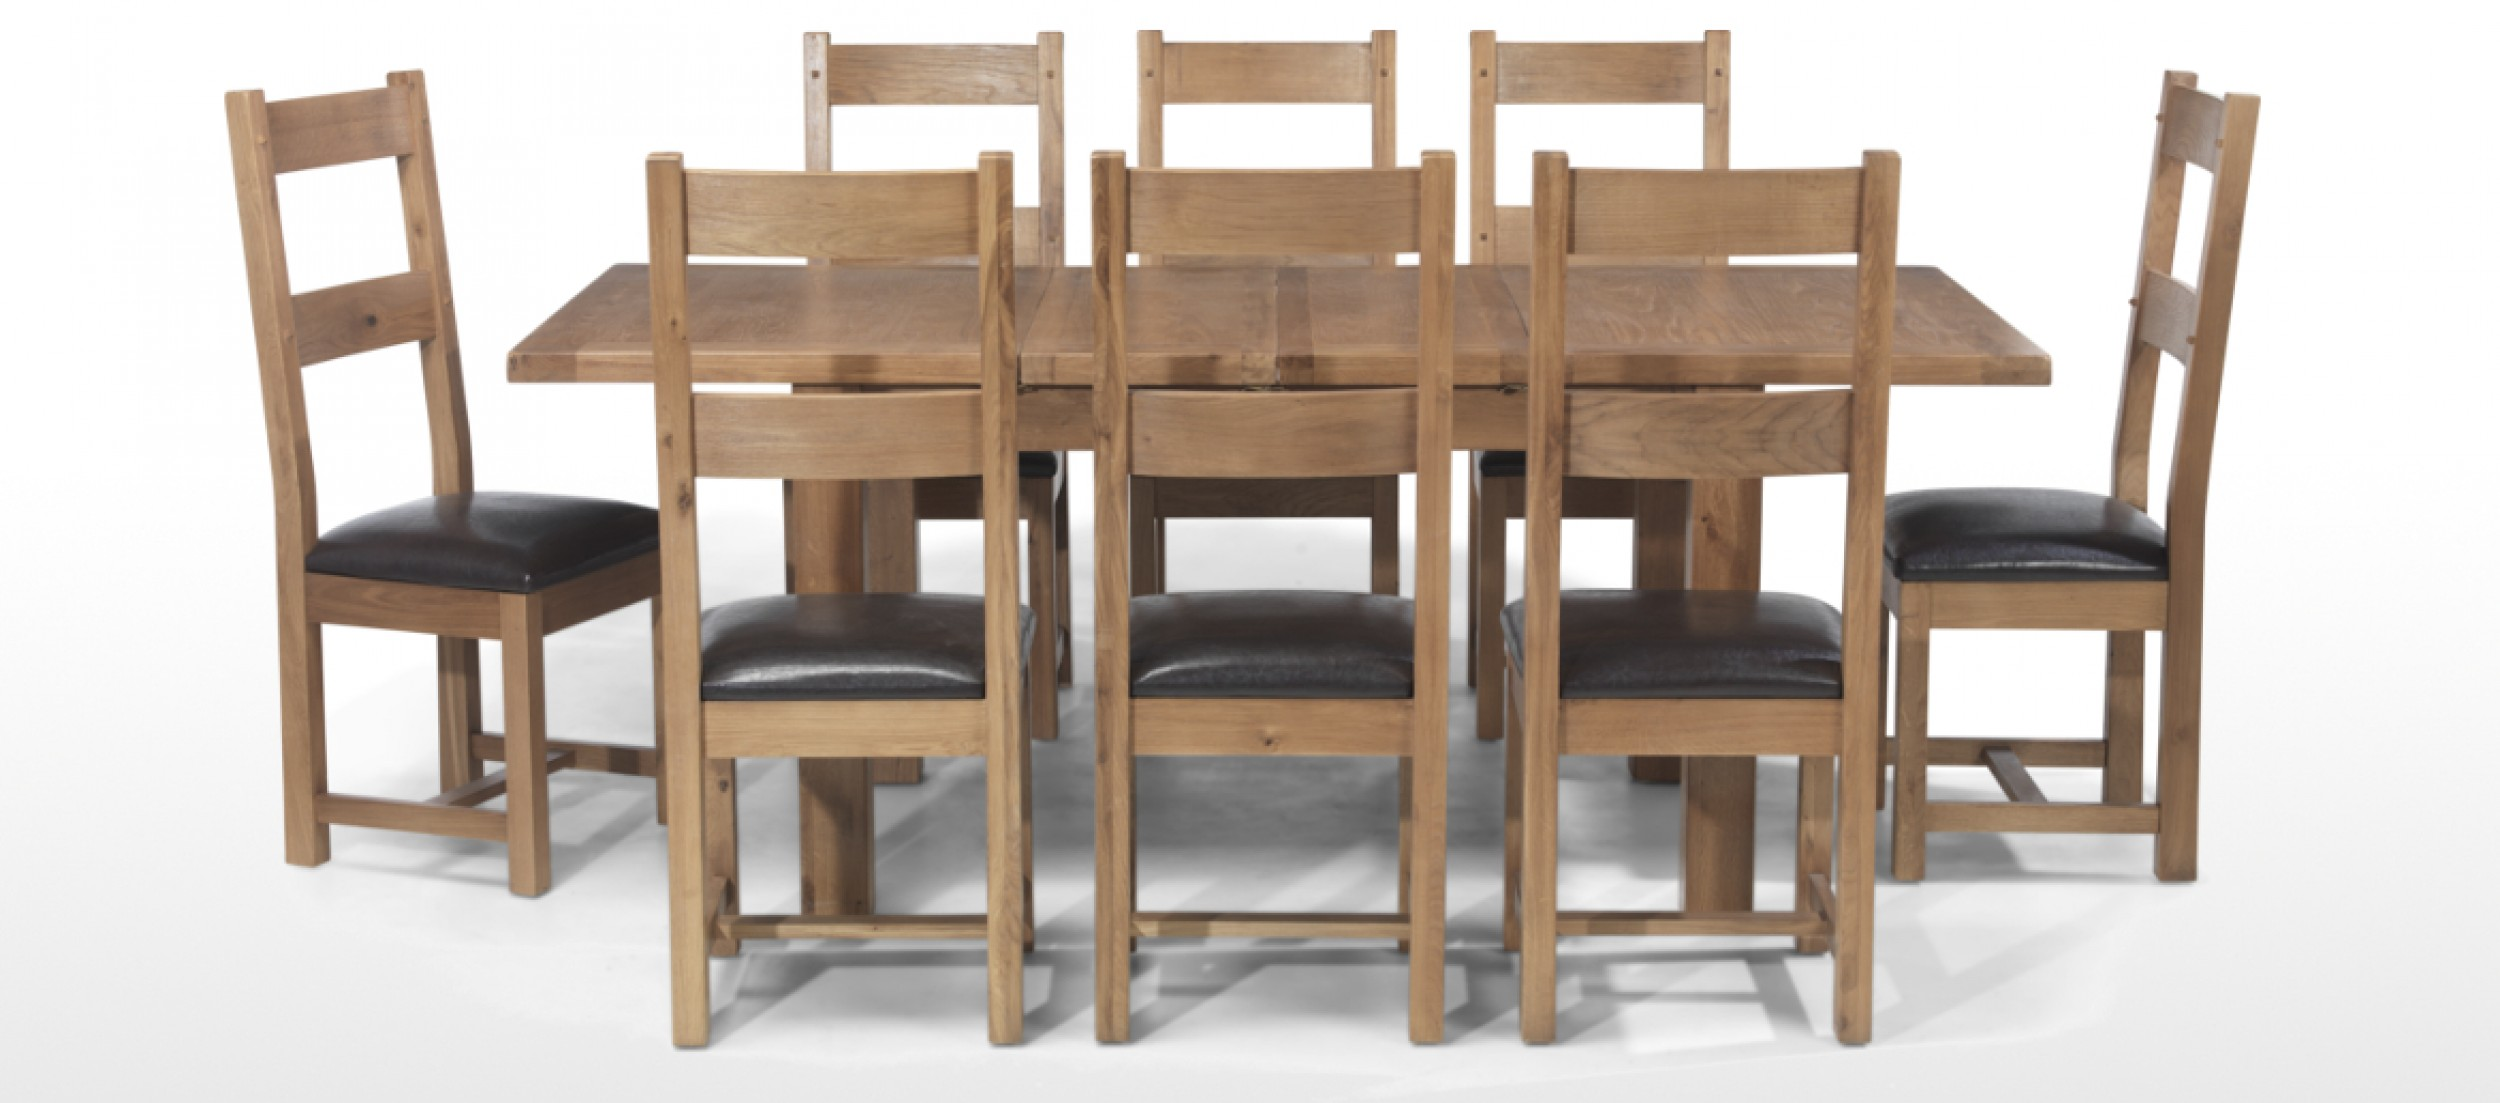 Restaurant Tables And Chairs Rustic Oak 132 198 Cm Extending Dining Table And 8 Chairs